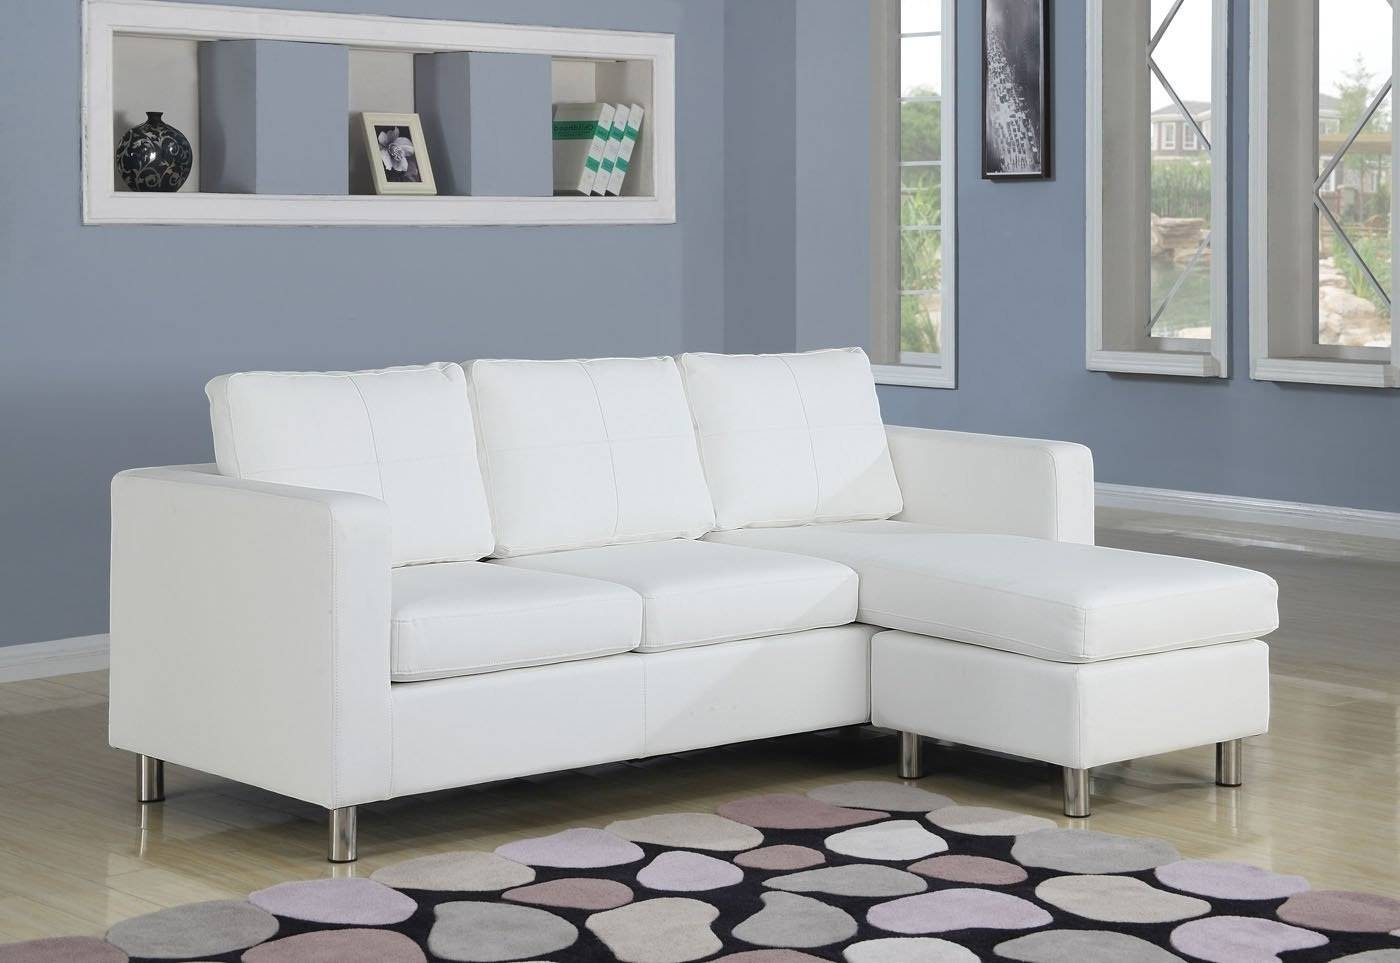 Cool Small Sectional Sofa With Chaise Lounge 74 With Additional inside Small 2 Piece Sectional Sofas (Image 10 of 30)